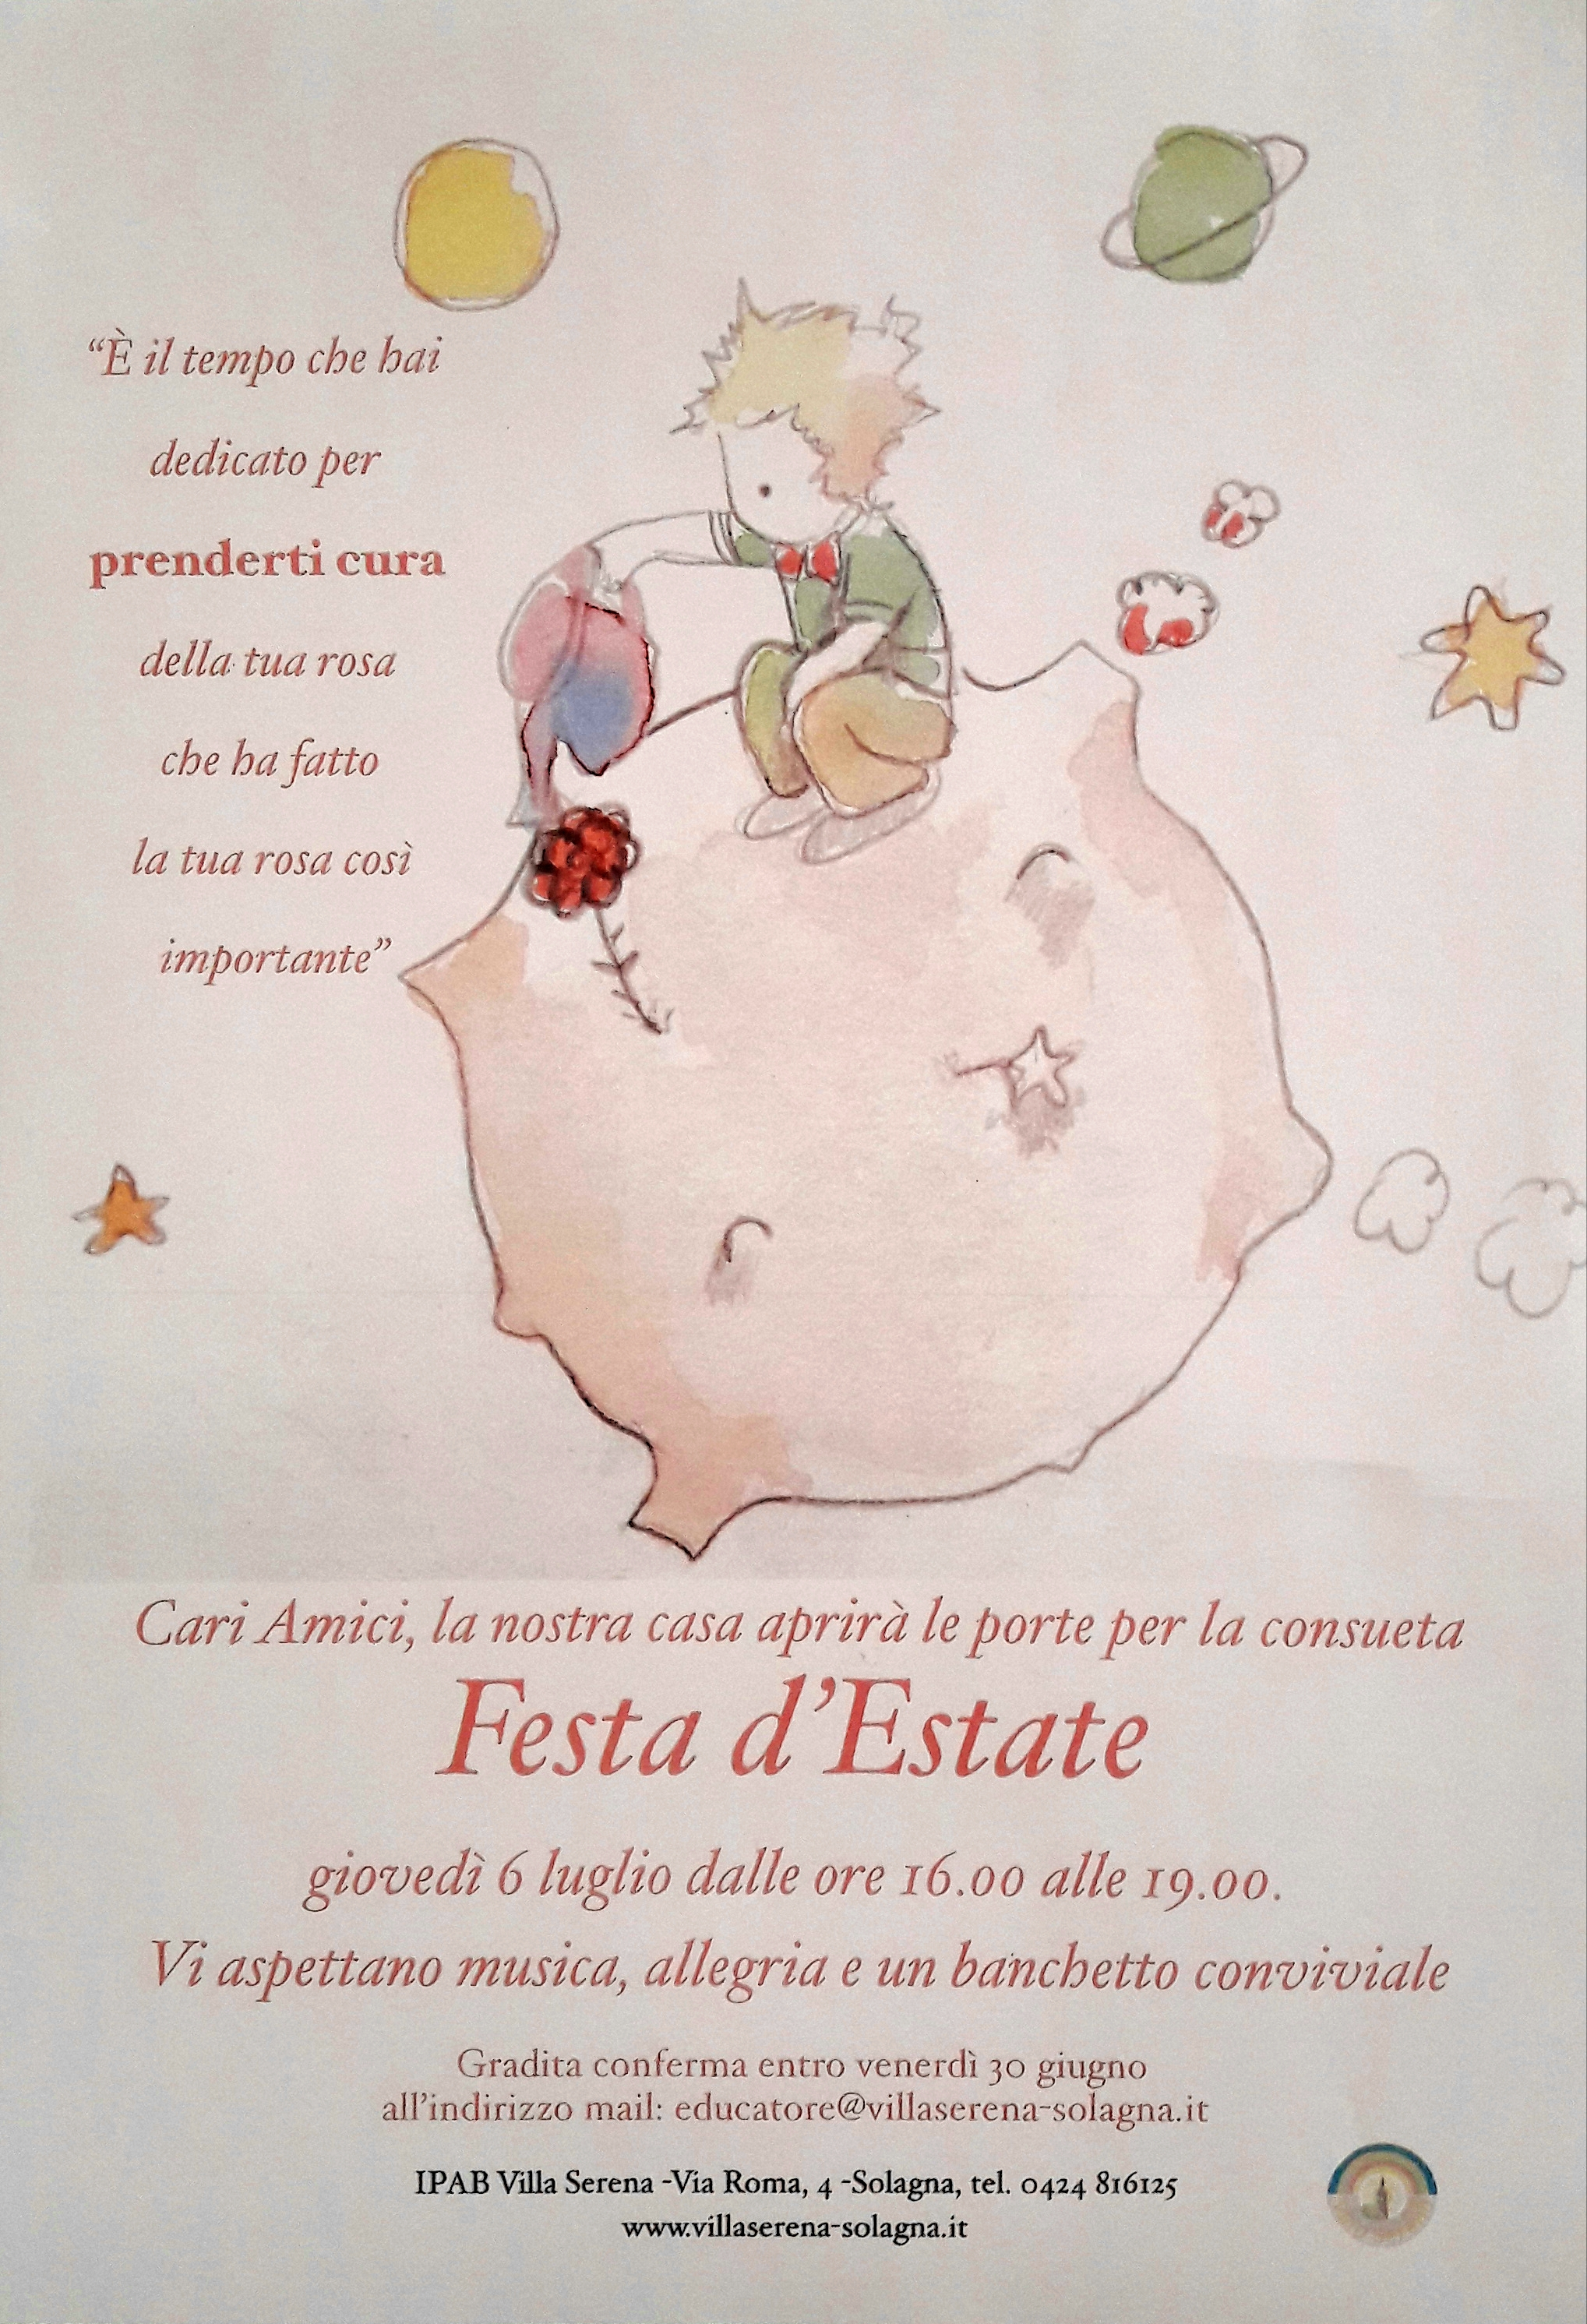 invito-festa-destate